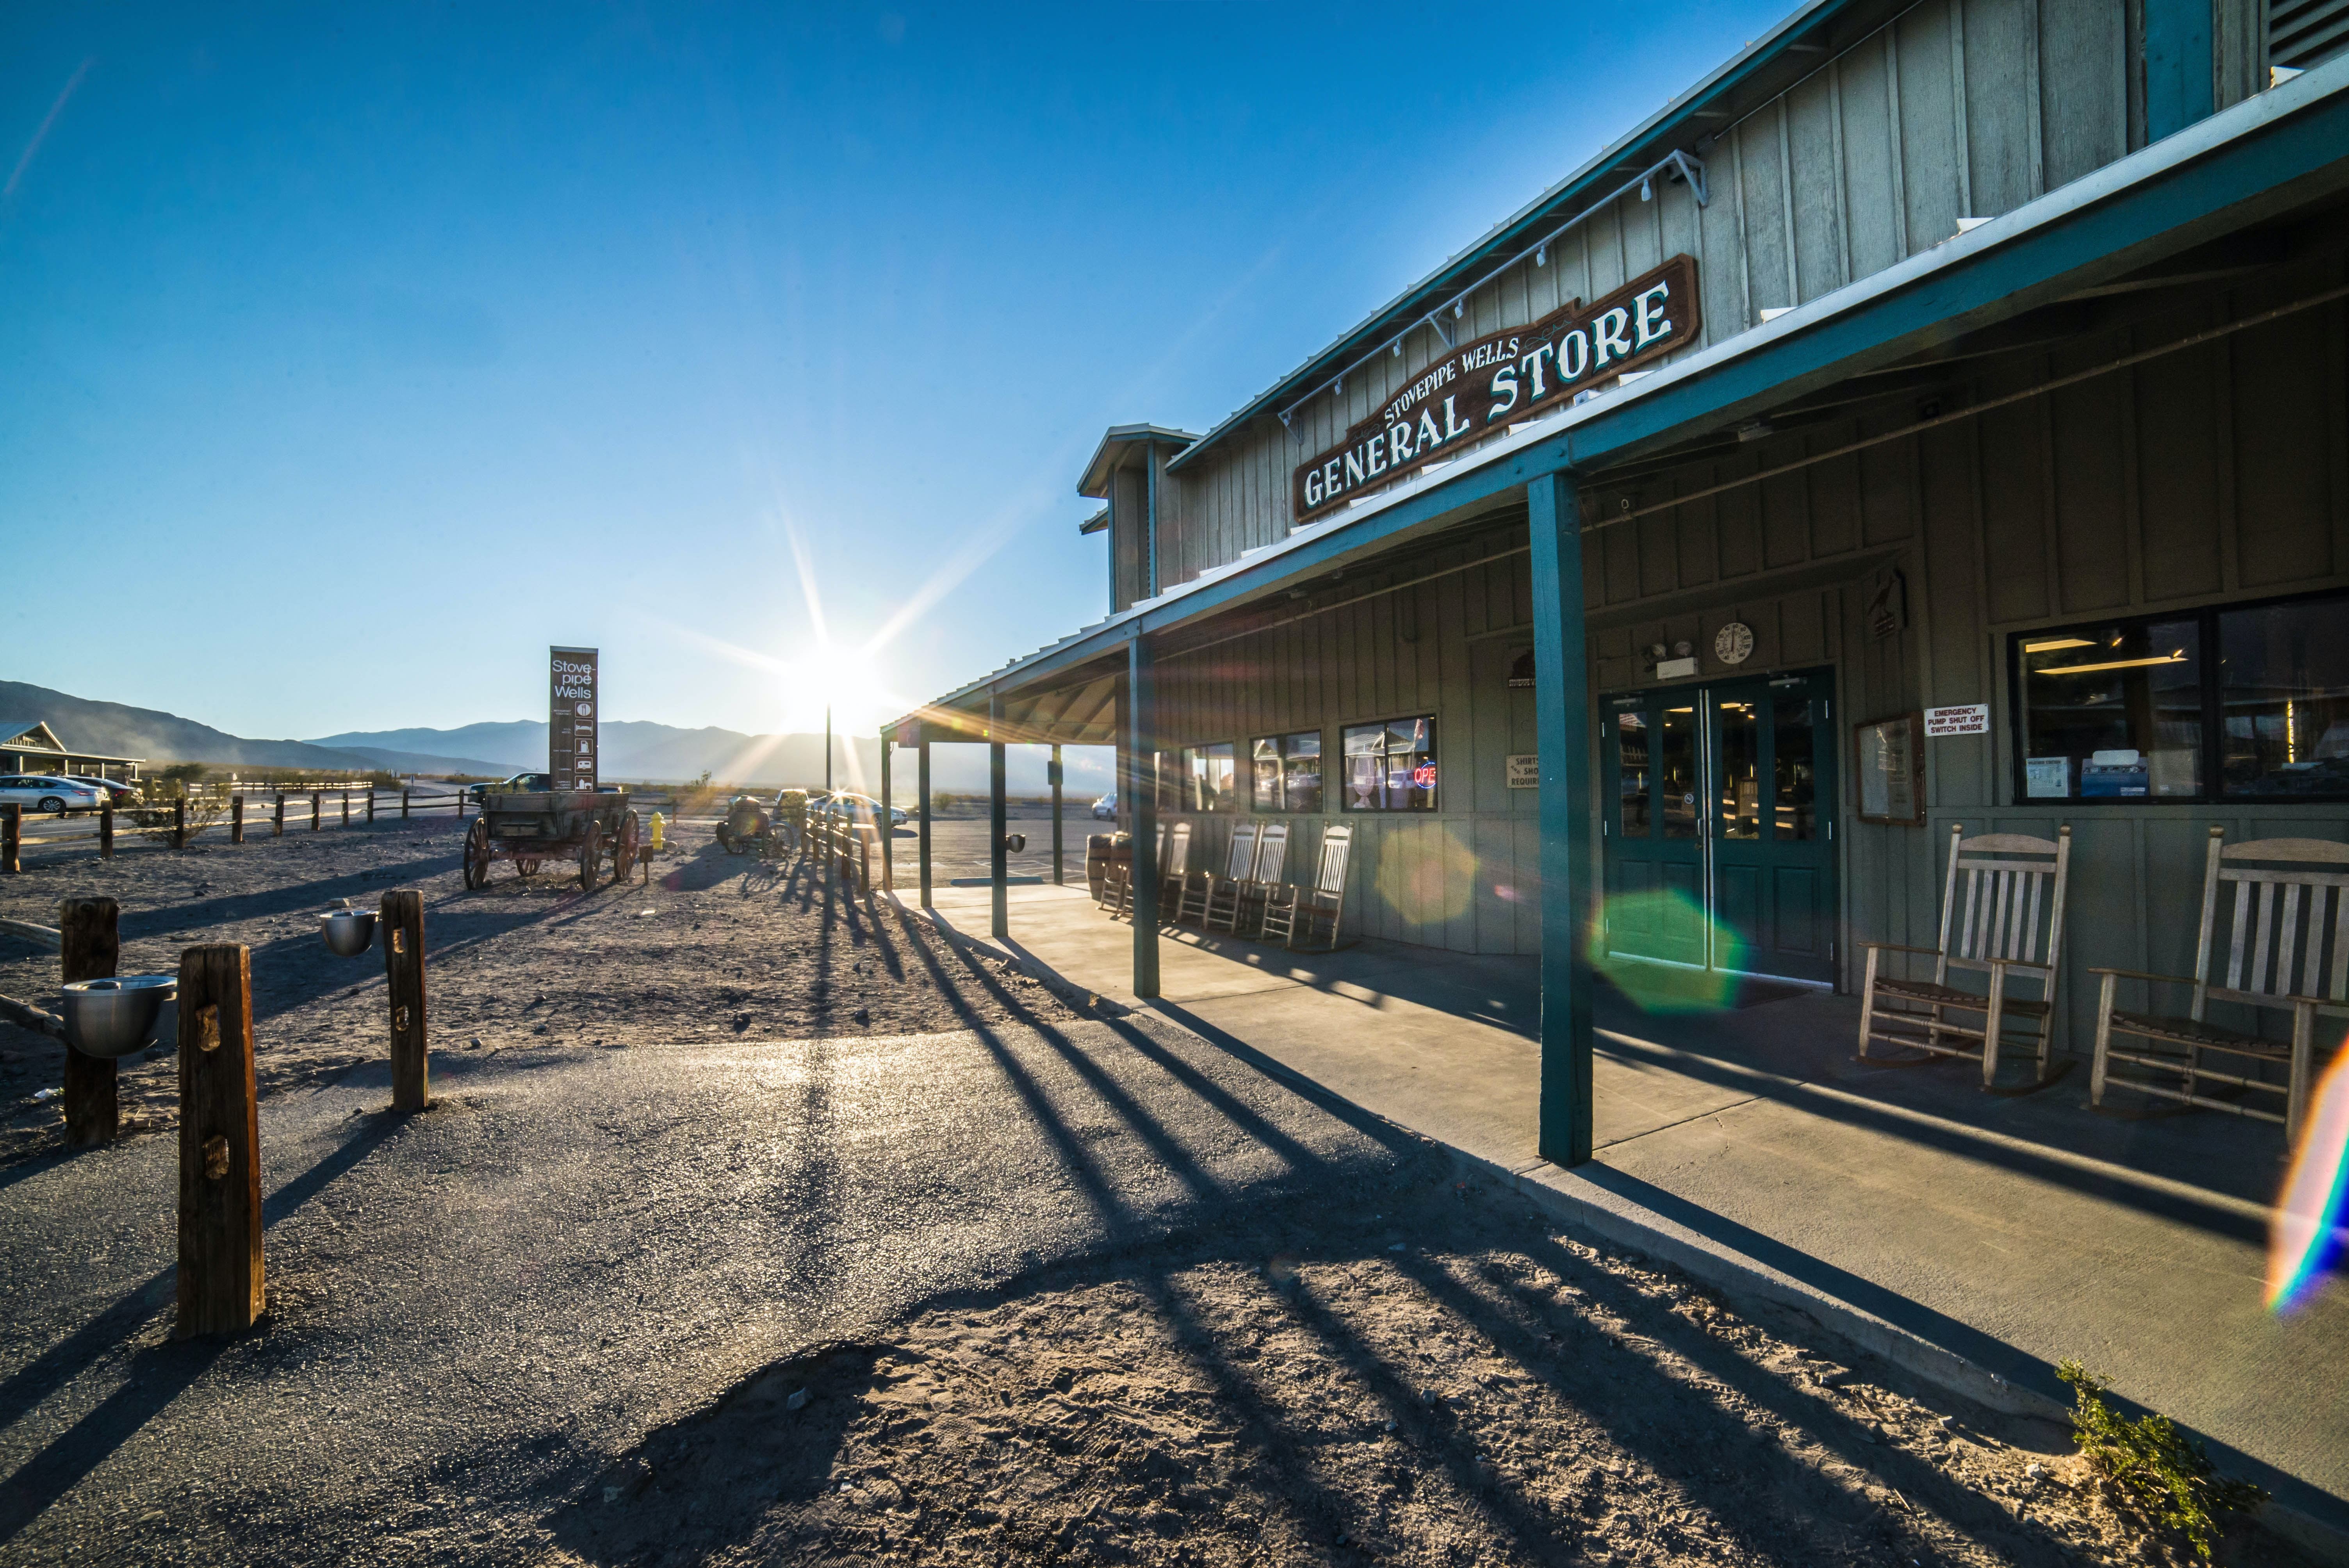 A general store in a remote location in the mountains